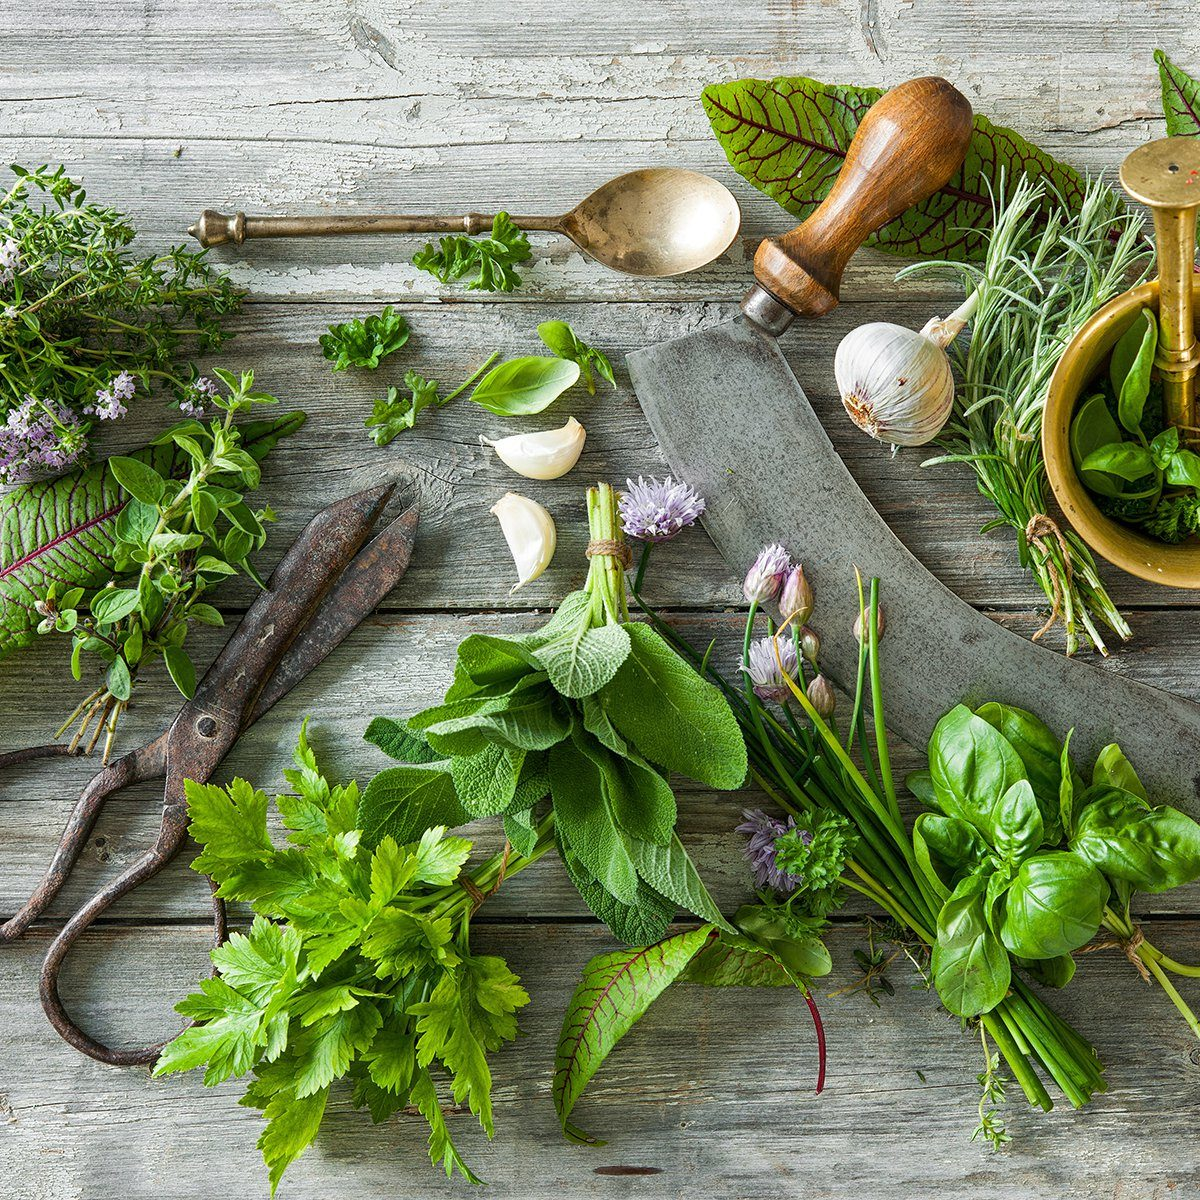 fresh kitchen herbs and spices on wooden table.